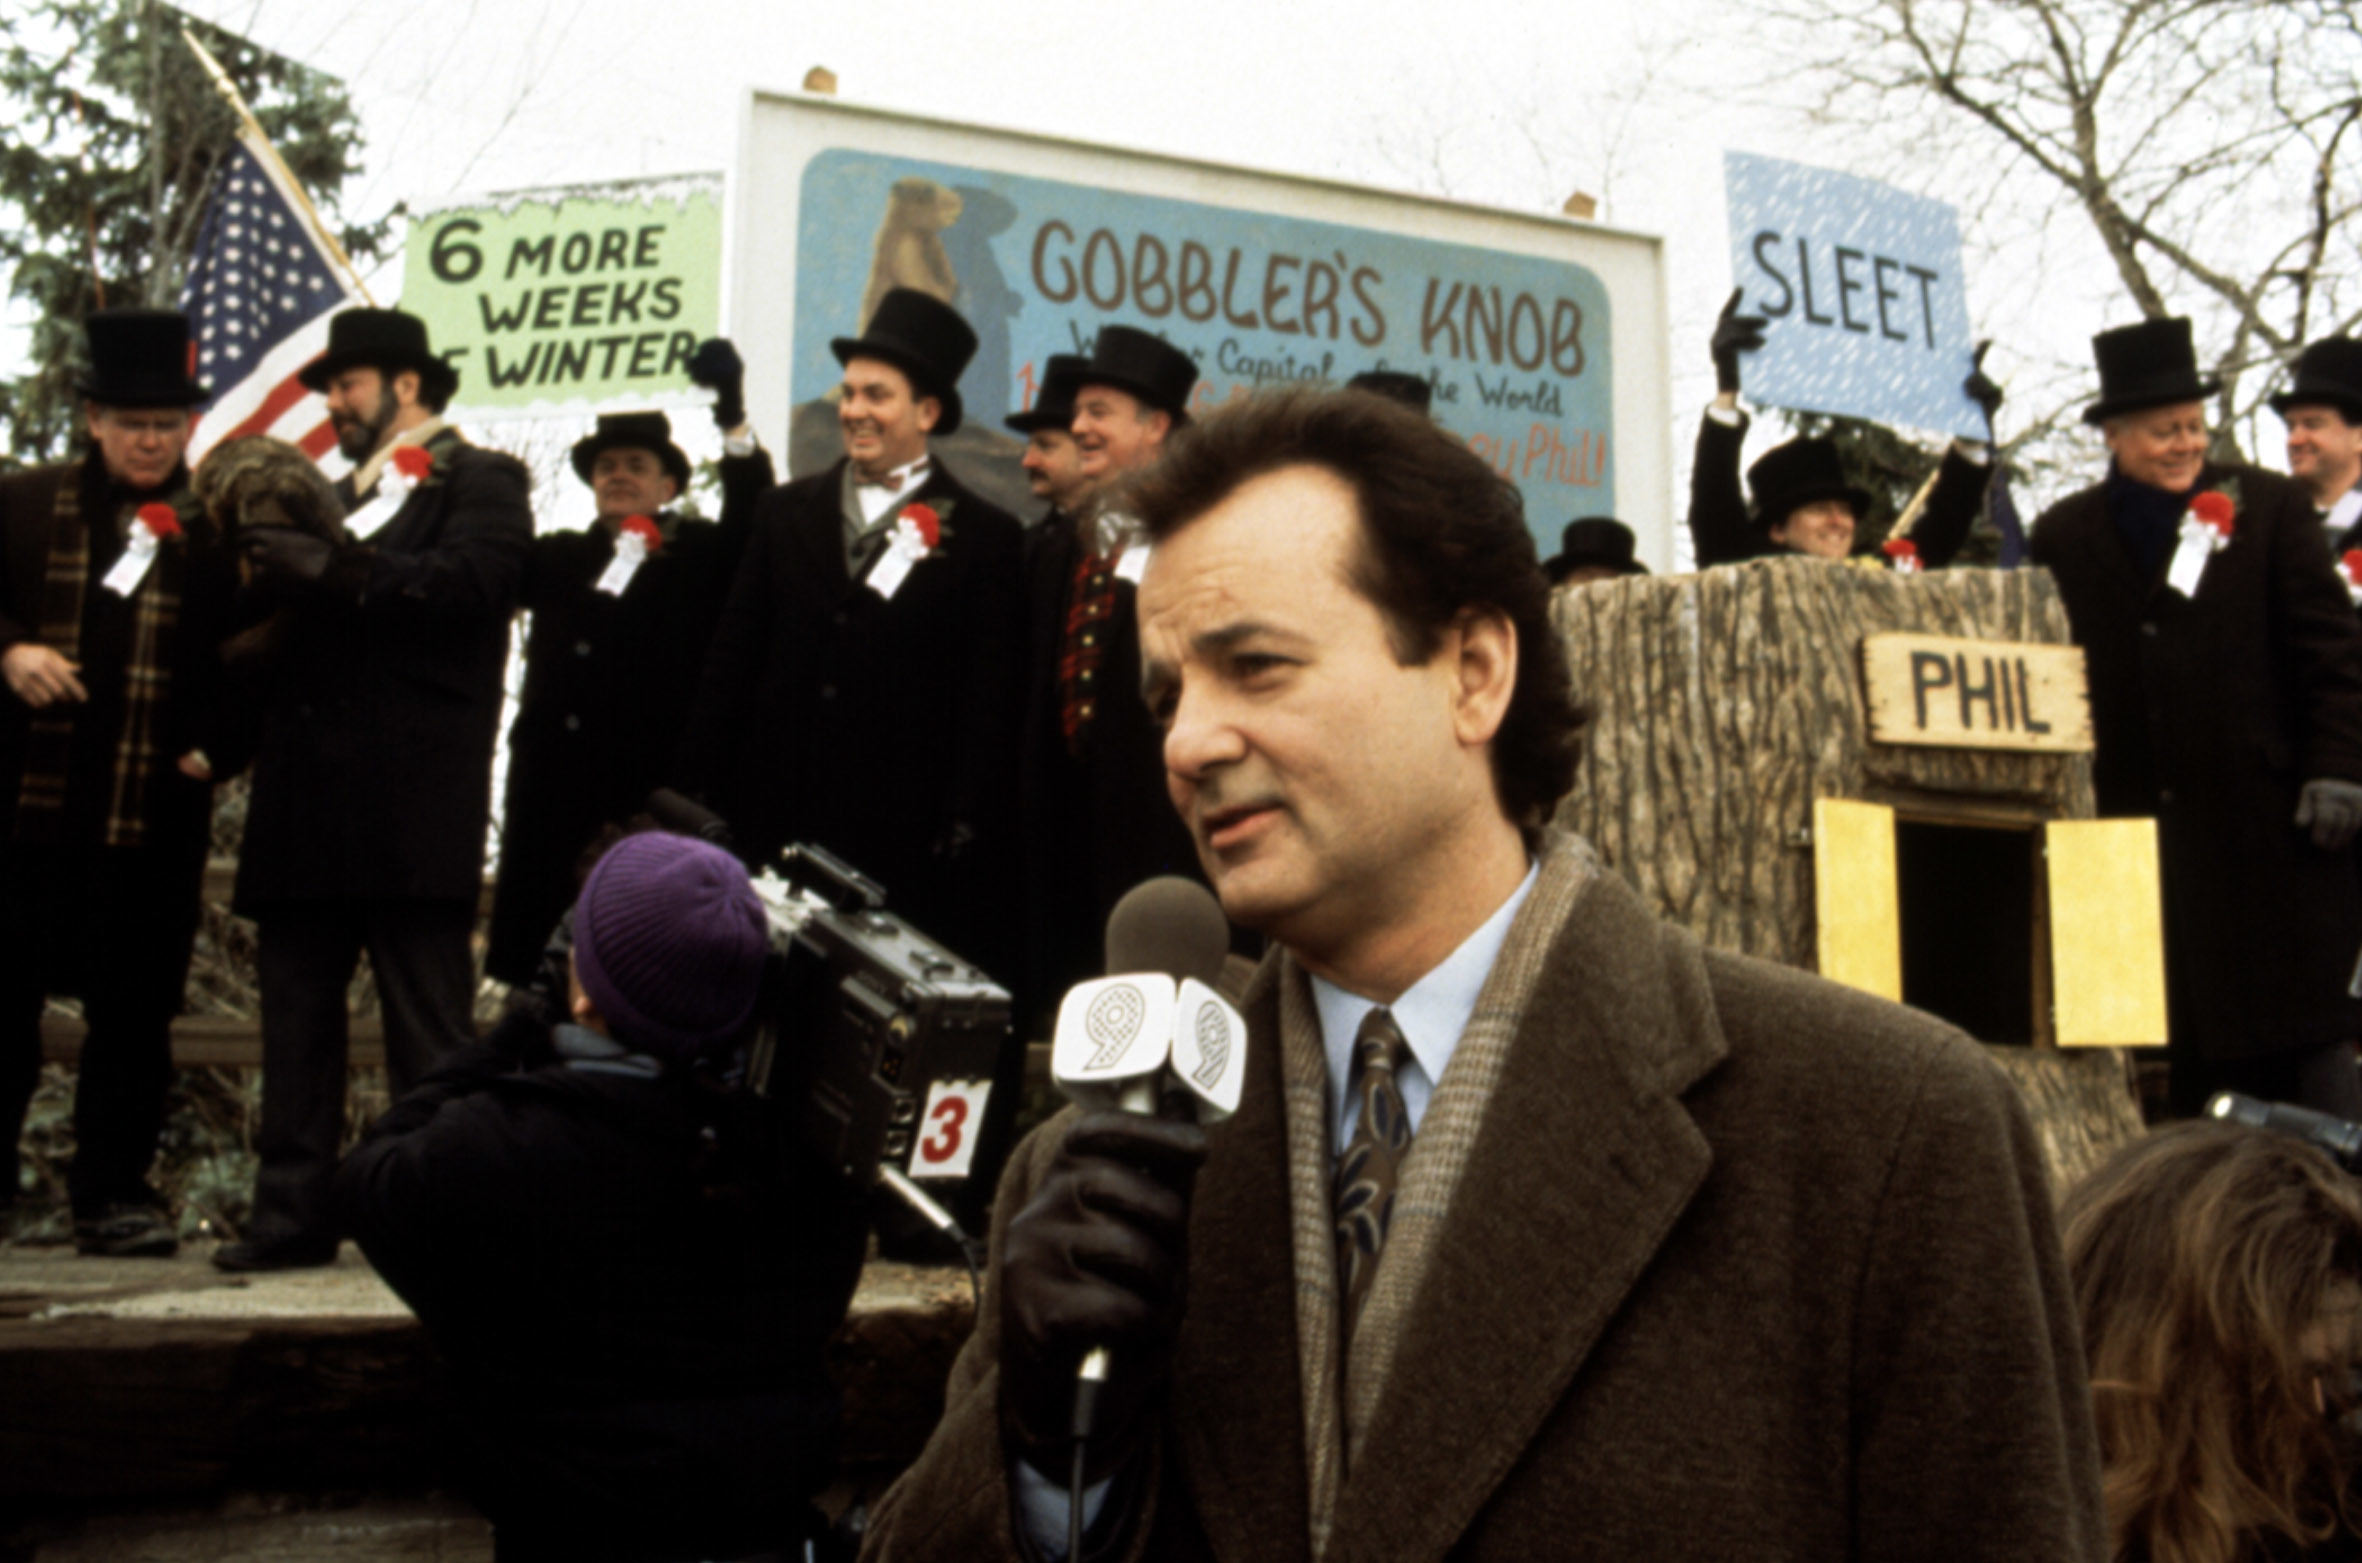 Bill Murray stands with a microphone in front of the groundhog stump